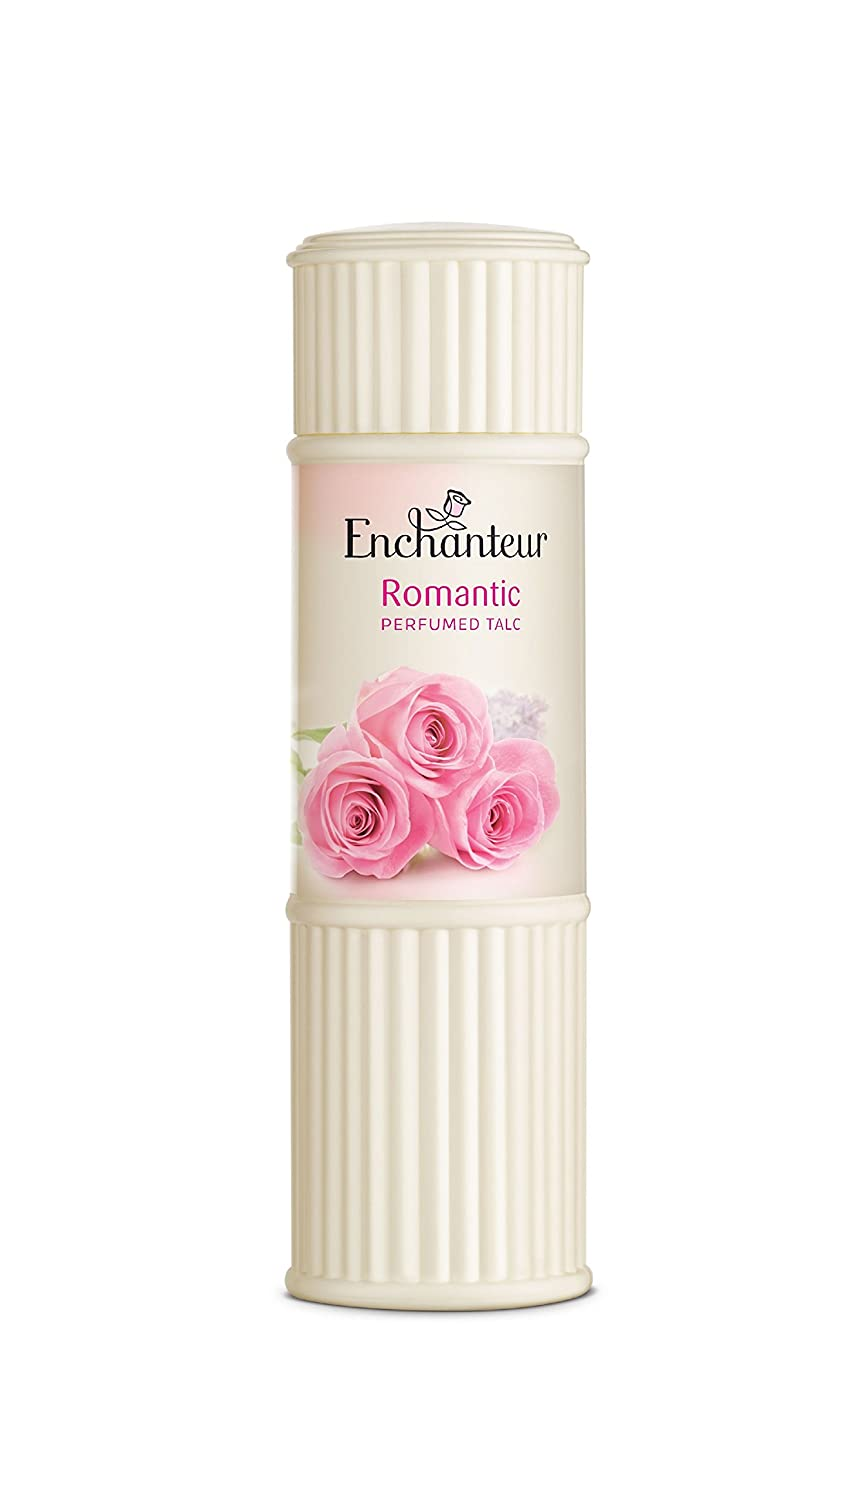 ENCHANTEUR PERFUMED TALC ROMANTIC  125 G